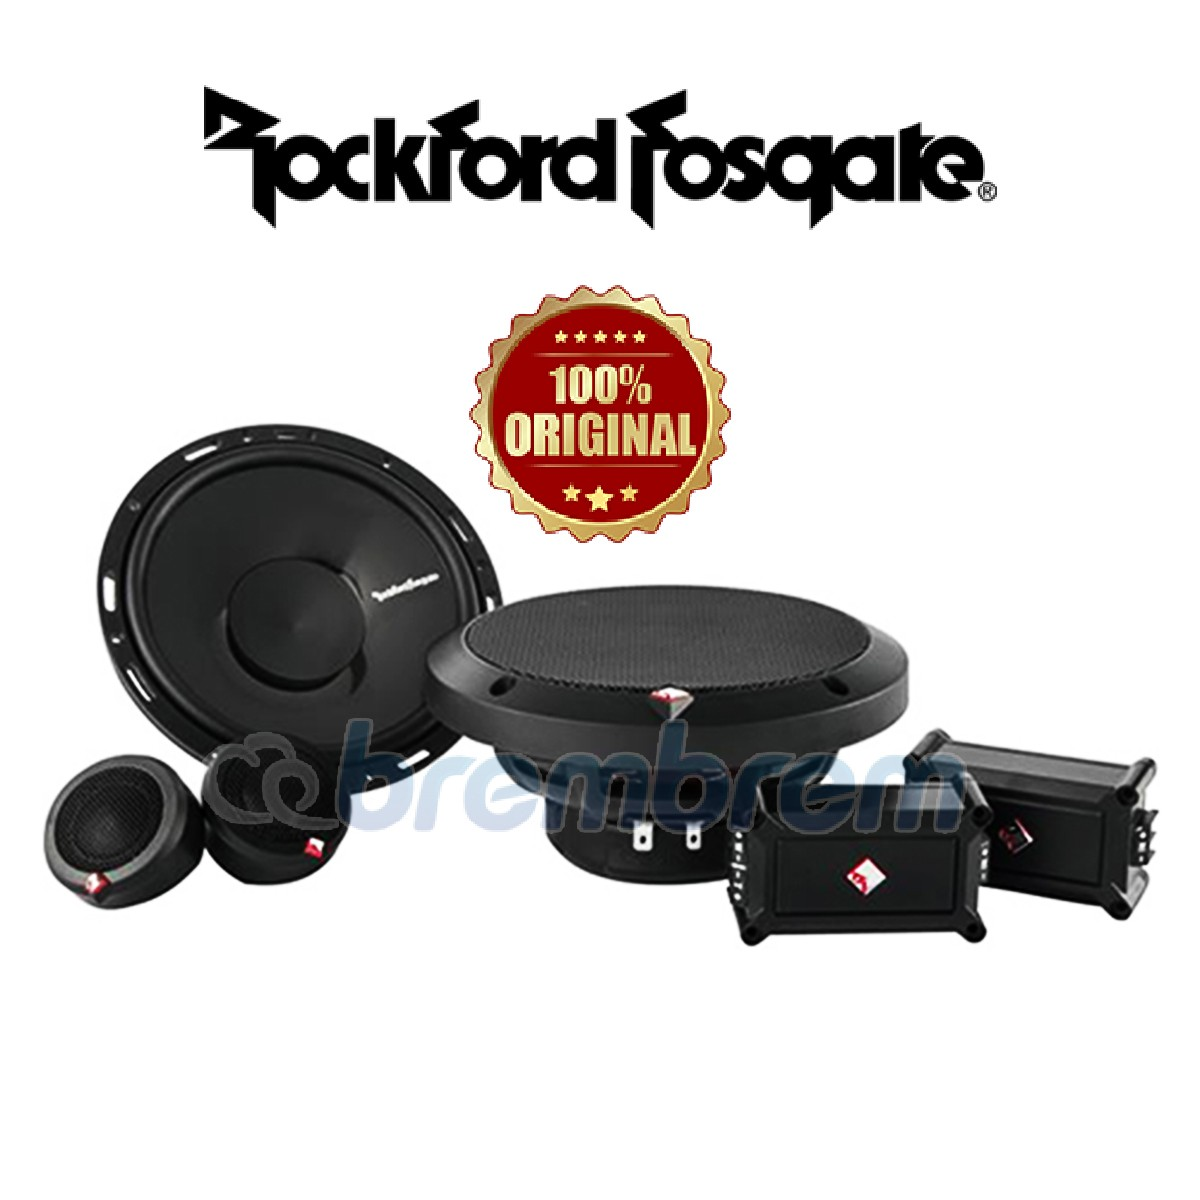 ROCKFORD FOSGATE P165SE - SPEAKER 2 WAY [RECOMMEND]